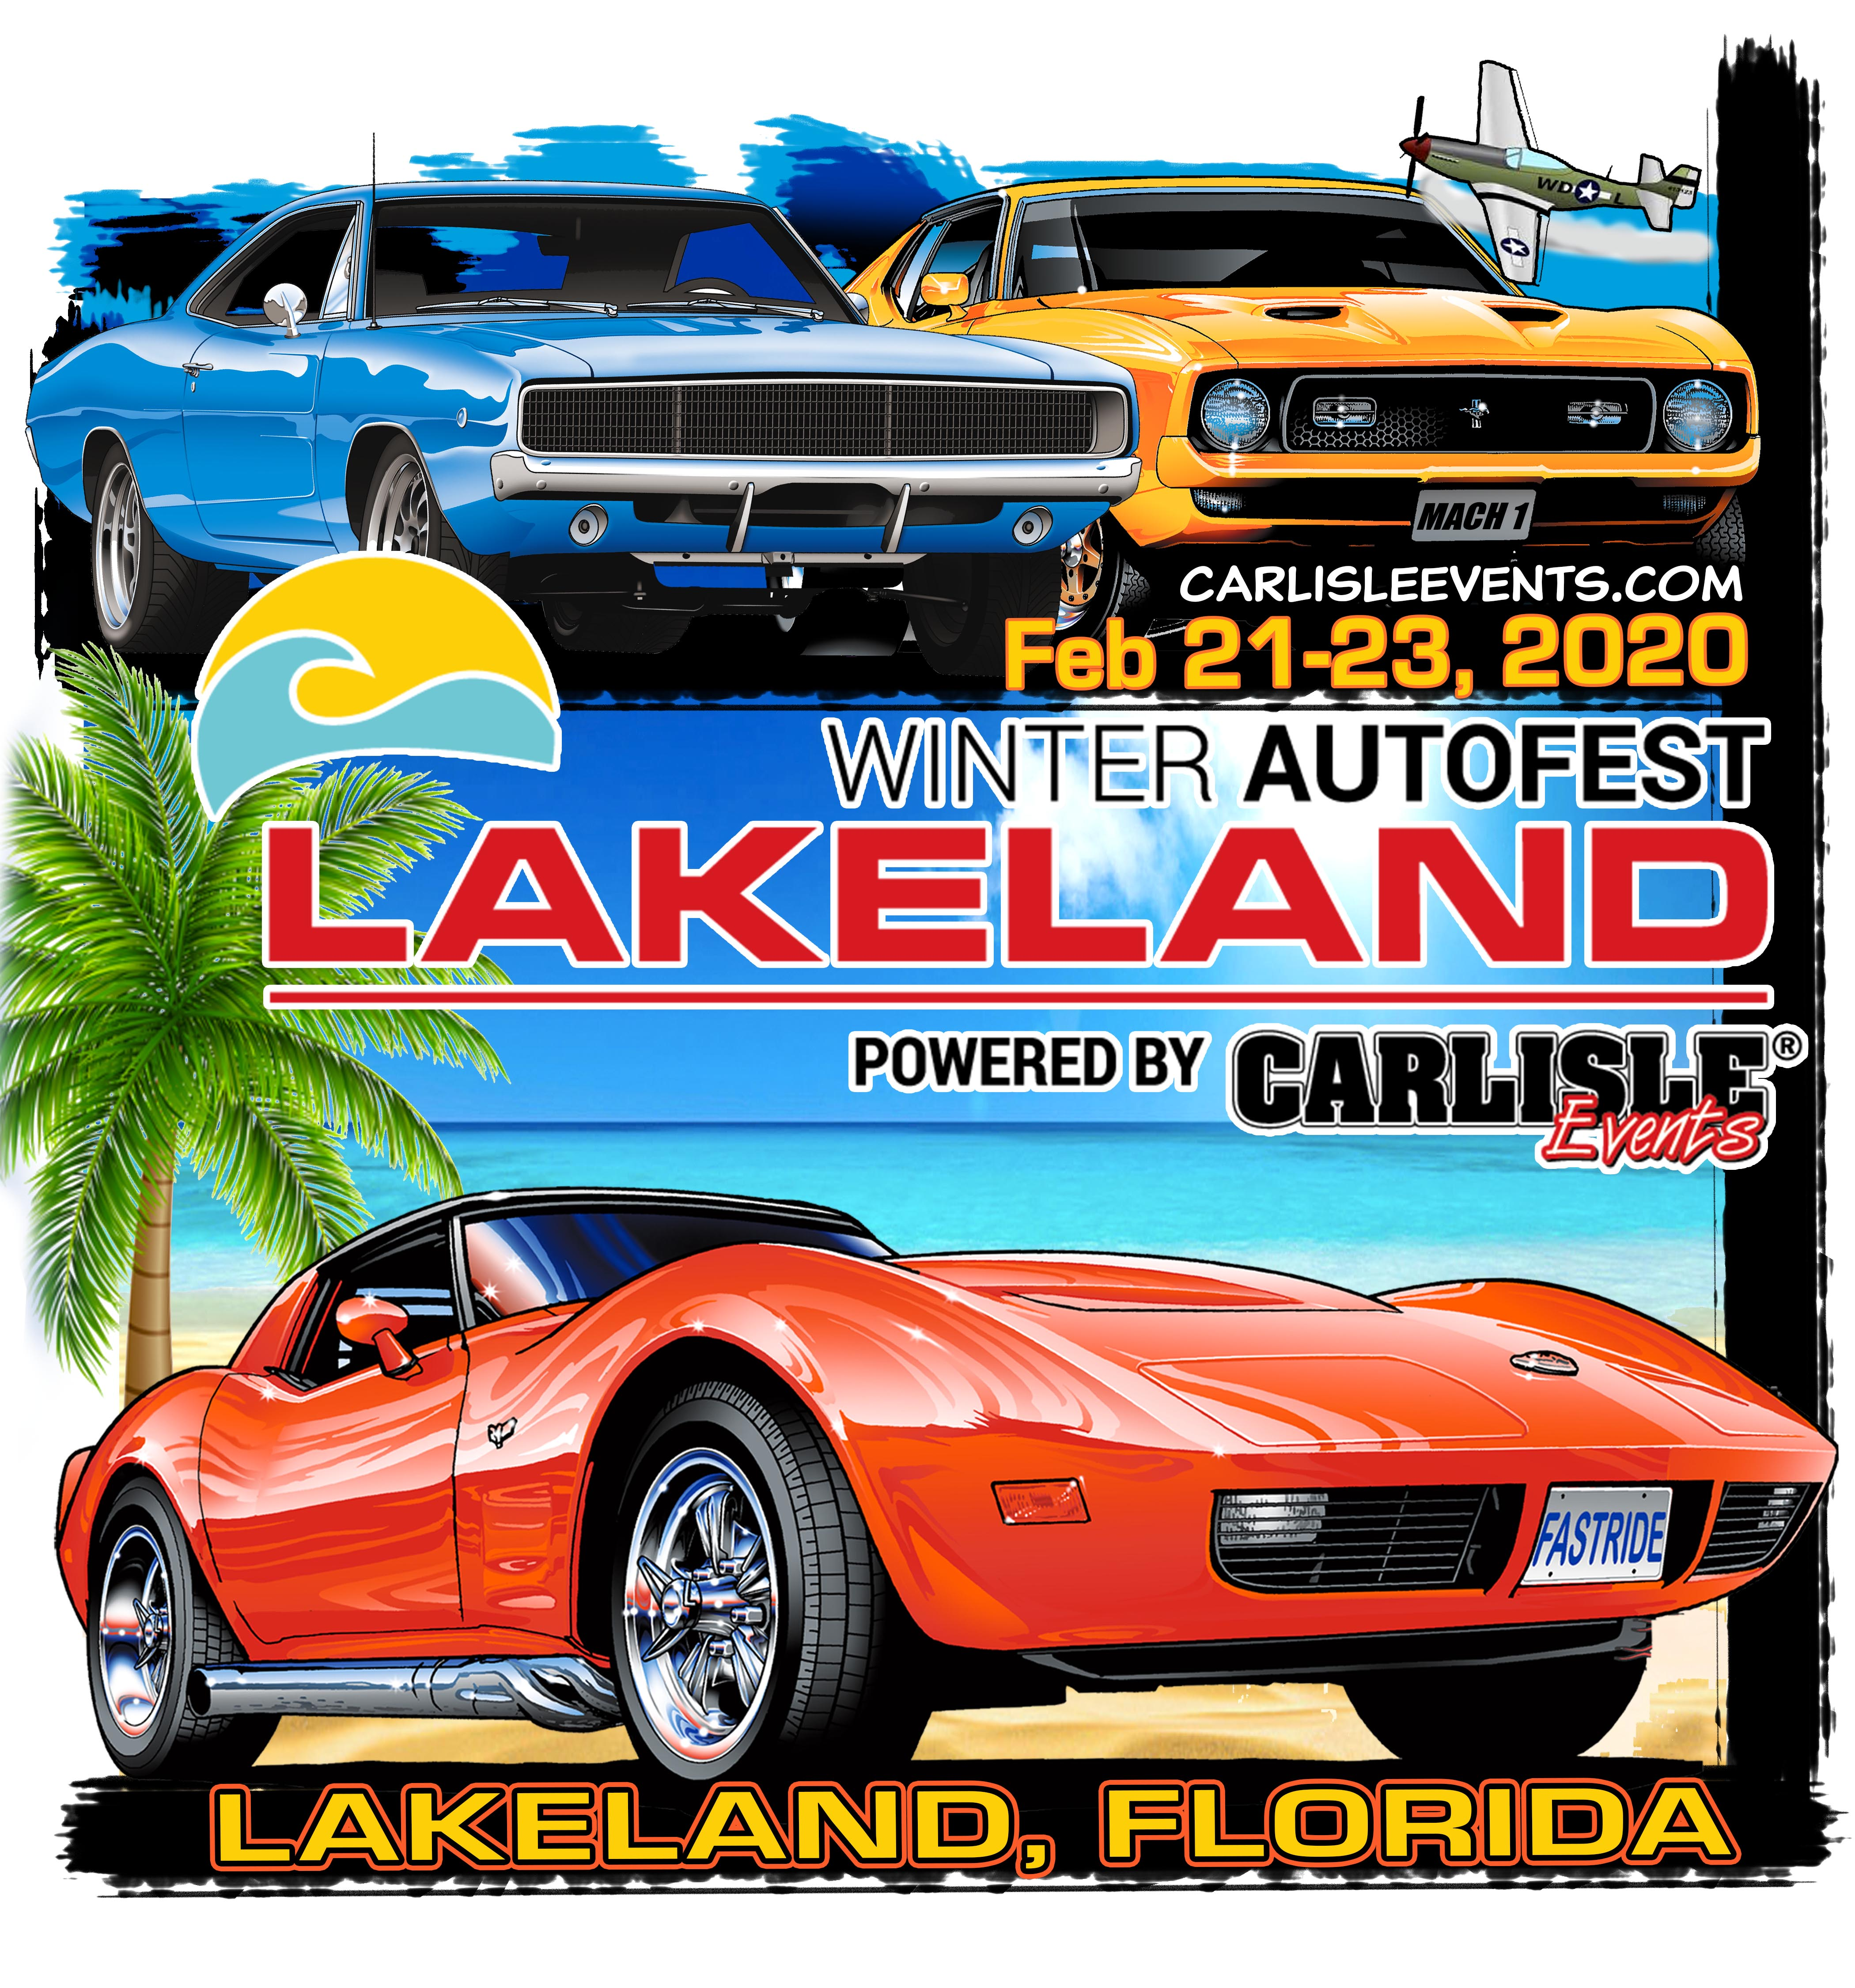 2020 Winter AutoFest Lakeland